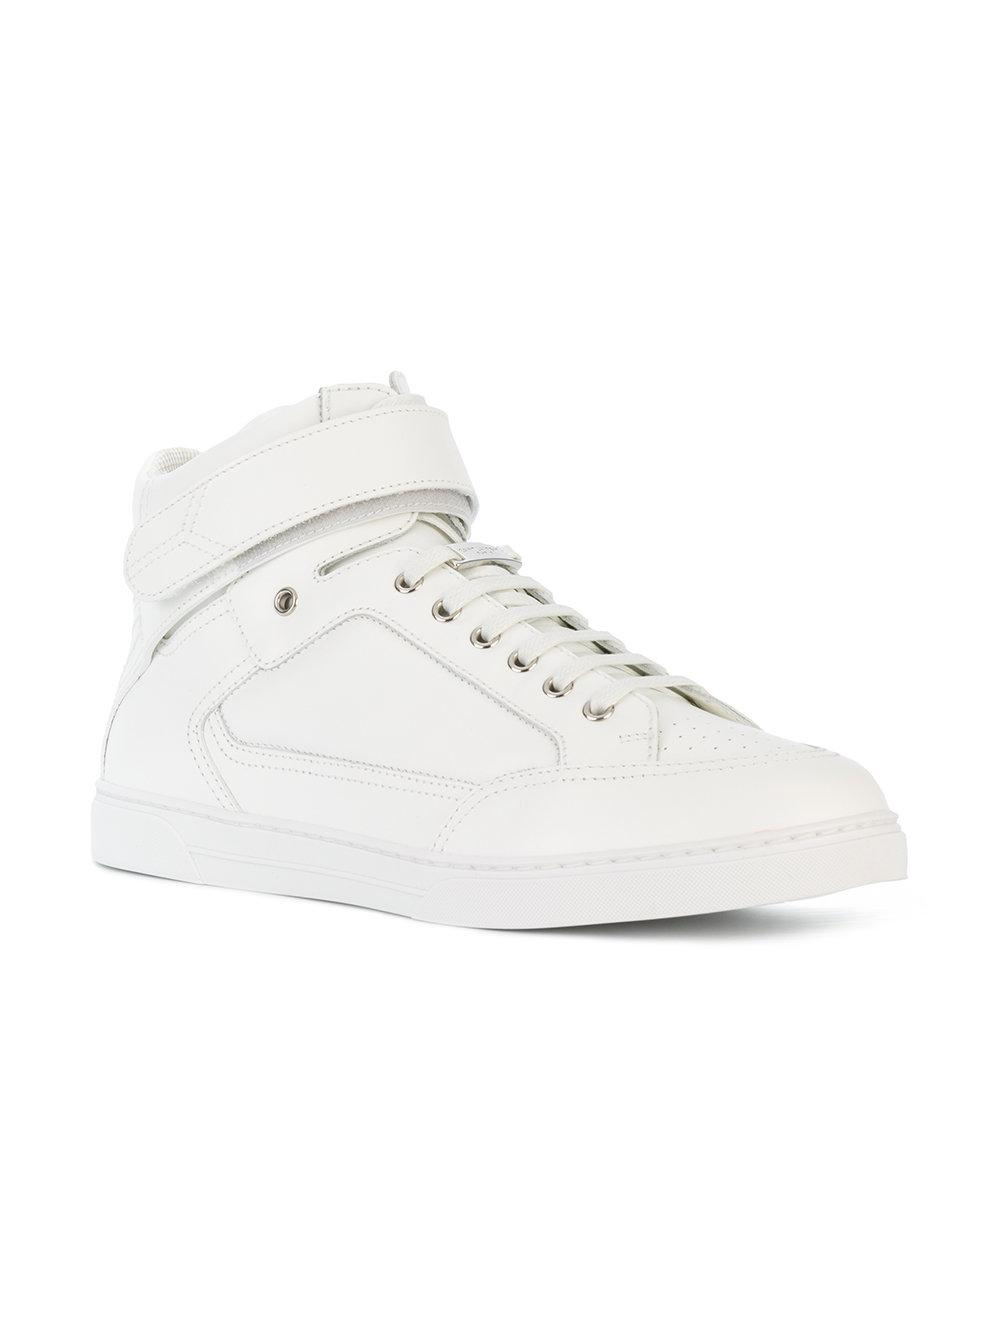 2f103d4c20f9 Lyst - Saint Laurent Max Scratch Mid-top Sneakers in White for Men ...